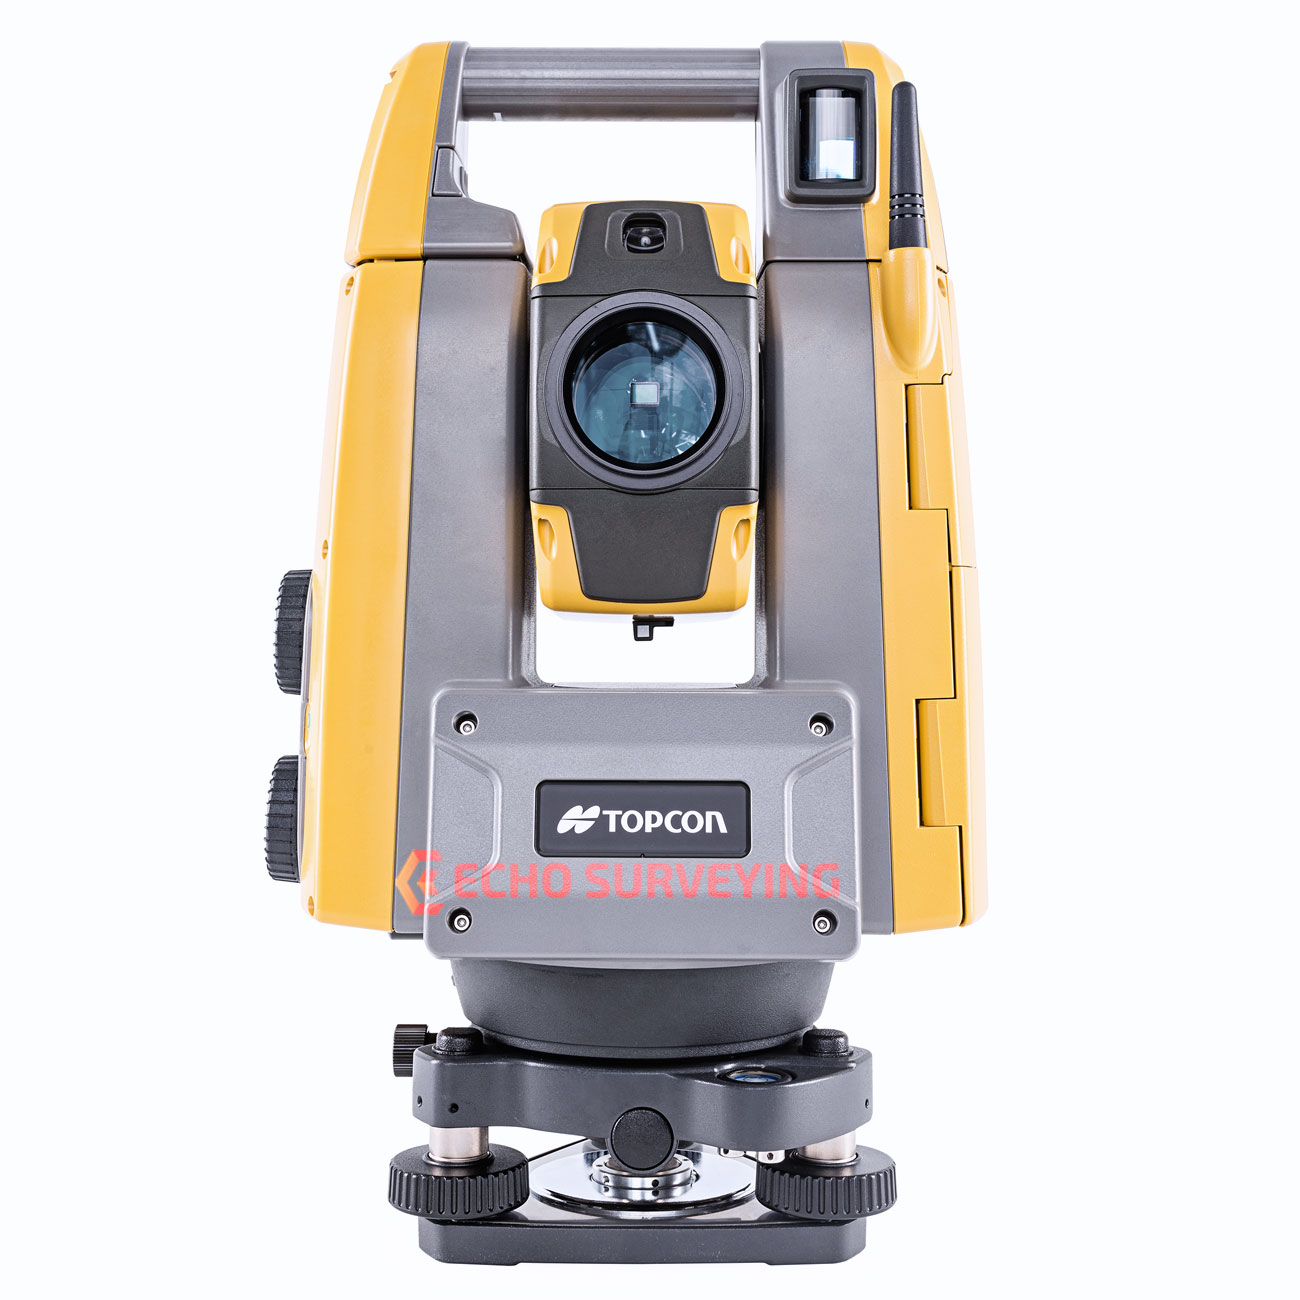 Topcon-GT-502-Robotic-Total-Station.jpg